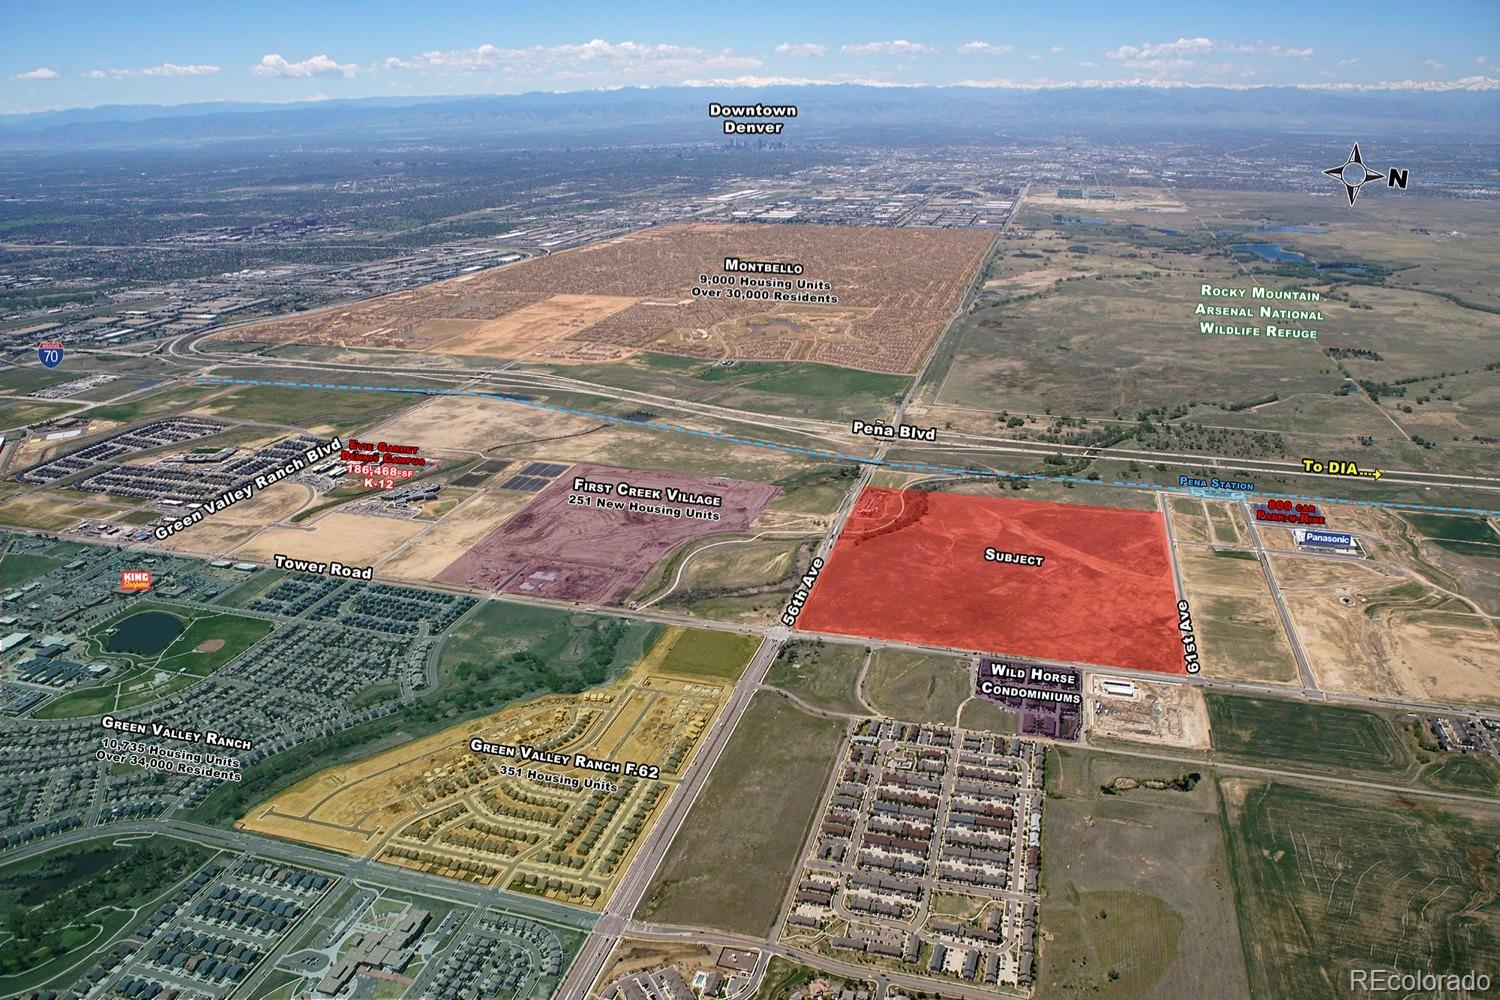 Rare opportunity to purchase one of the most unique and prime greenfield development sites in the City of Denver. This transit oriented development is located in the heart of Denver's rapidly expanding eastern edge with direct access to the newly constructed Pena Station. In total, the site is approximately 147 acres bounded by Tower road on the east, E 56th Ave. on the south, and E 61st Ave on the north. 